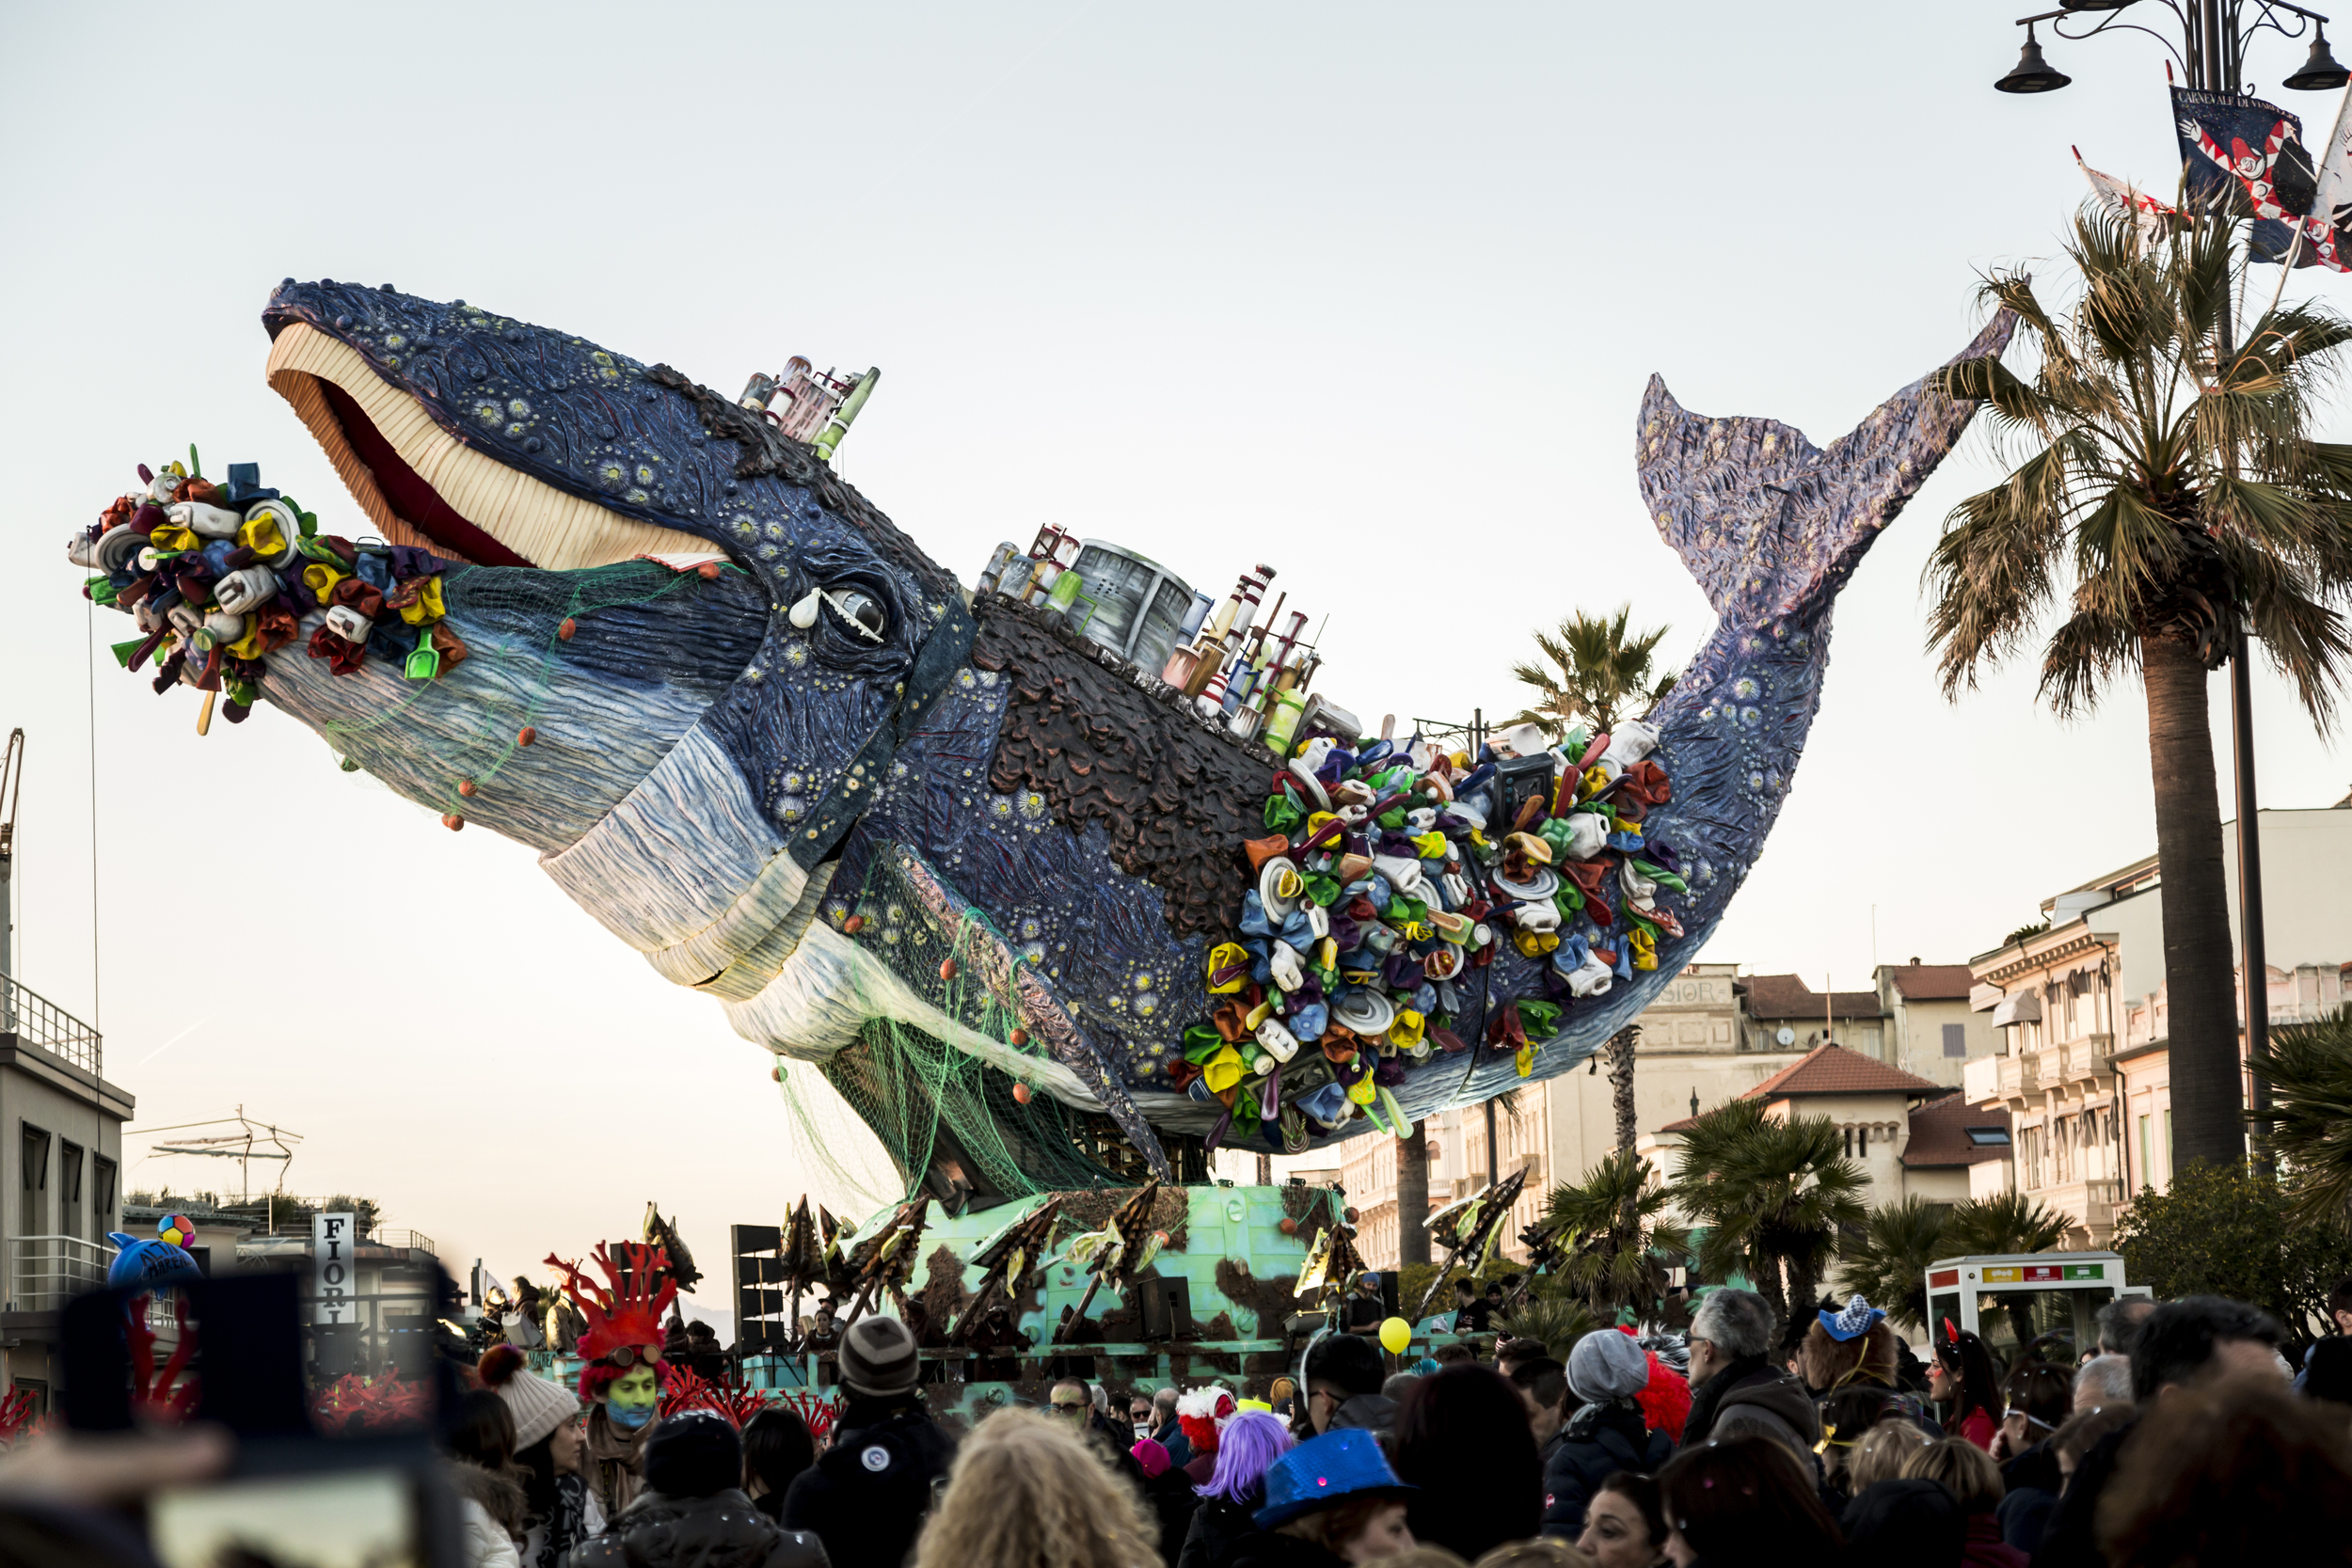 Giant sculpture of a whale dying from choking on plastic